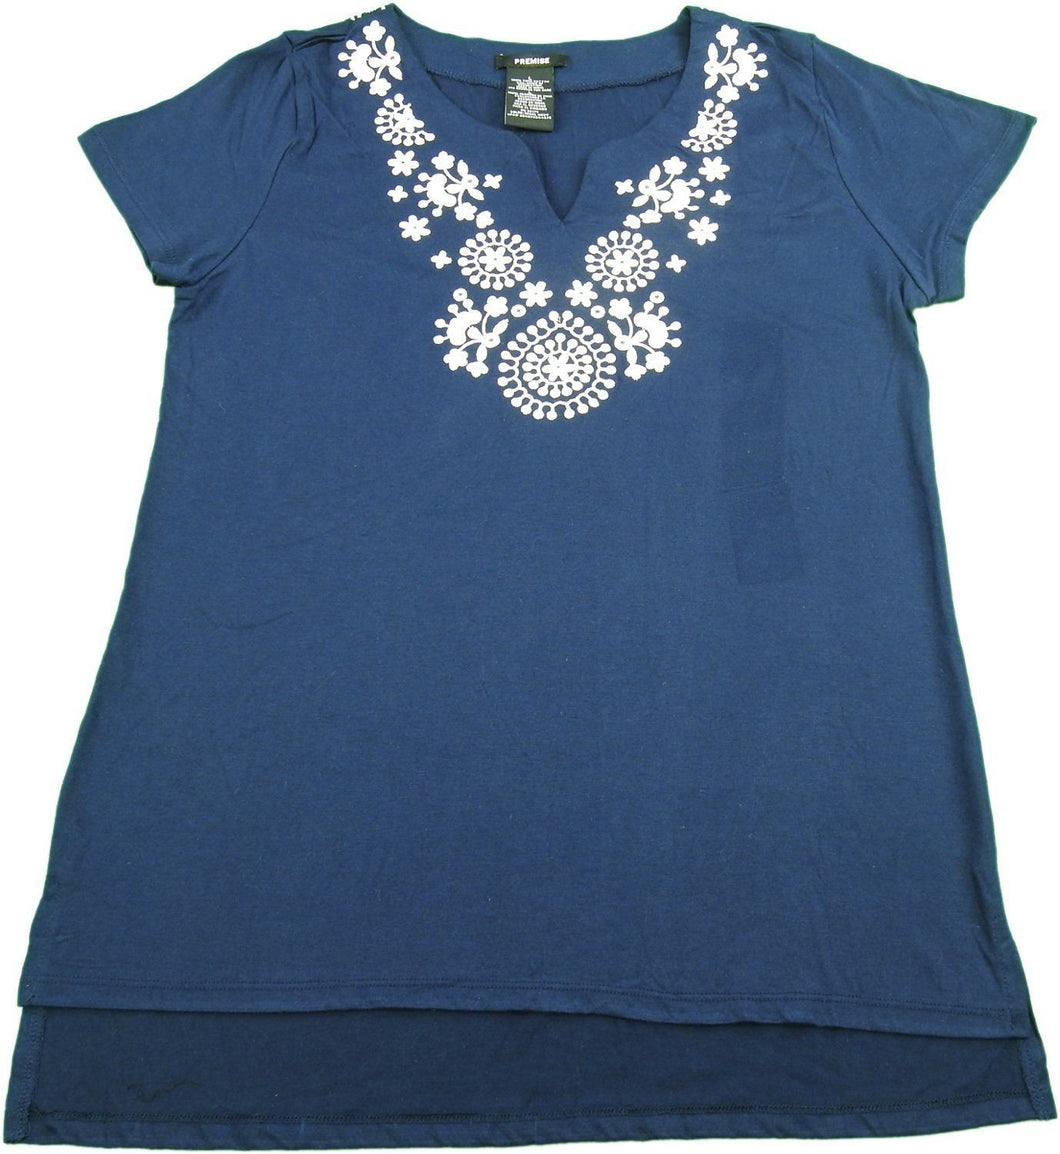 Premise Ladies Size Small Embroidered Top, Regal Navy